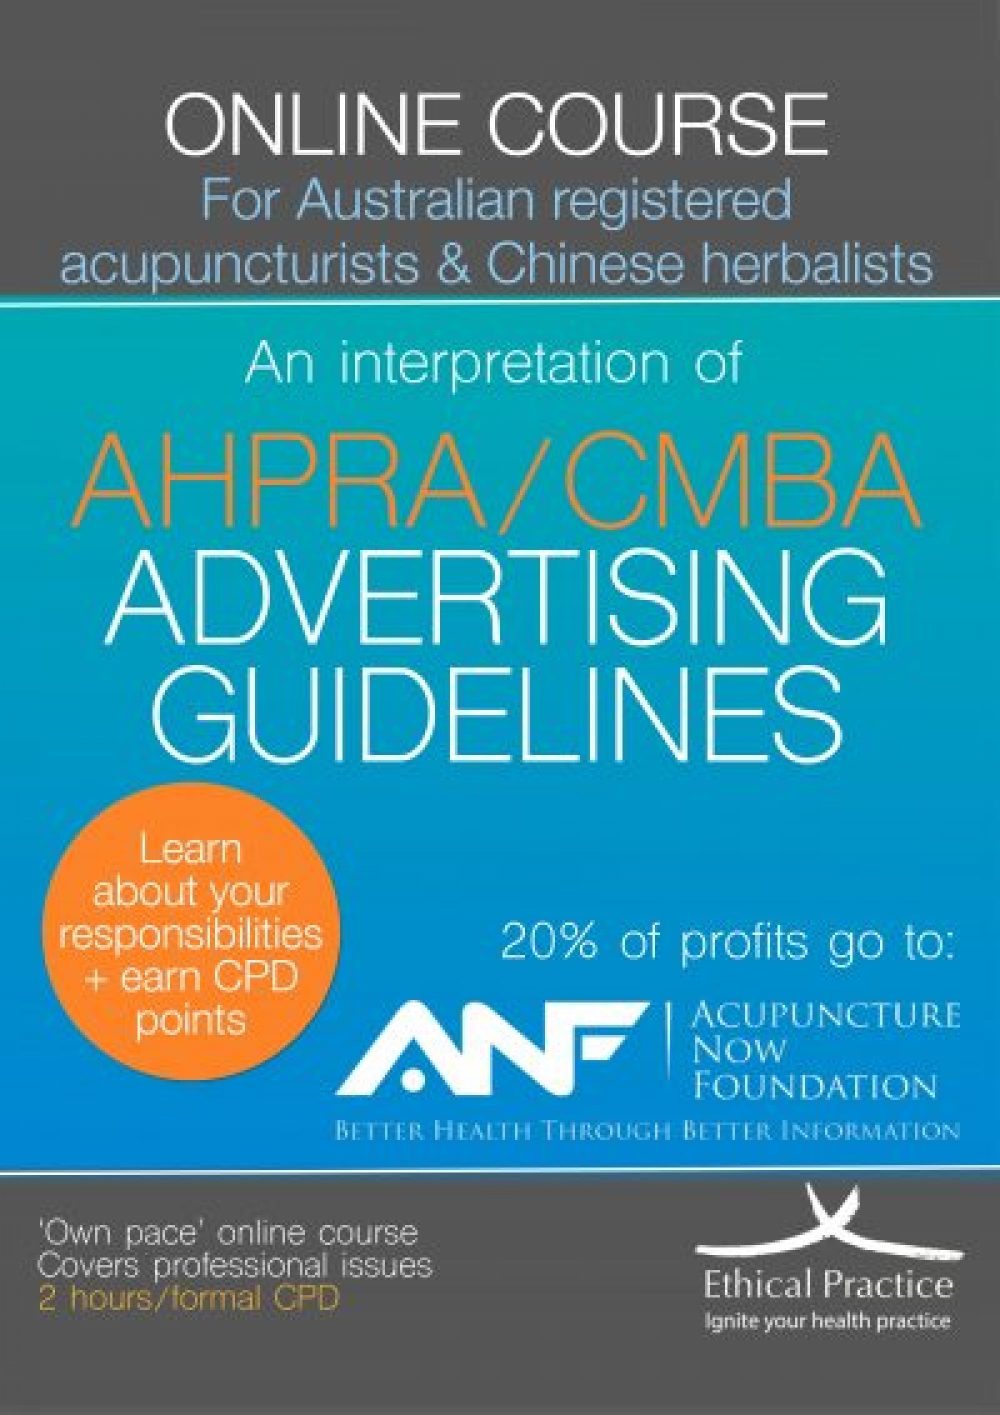 AHPRA CMBA Advertising Guidelines